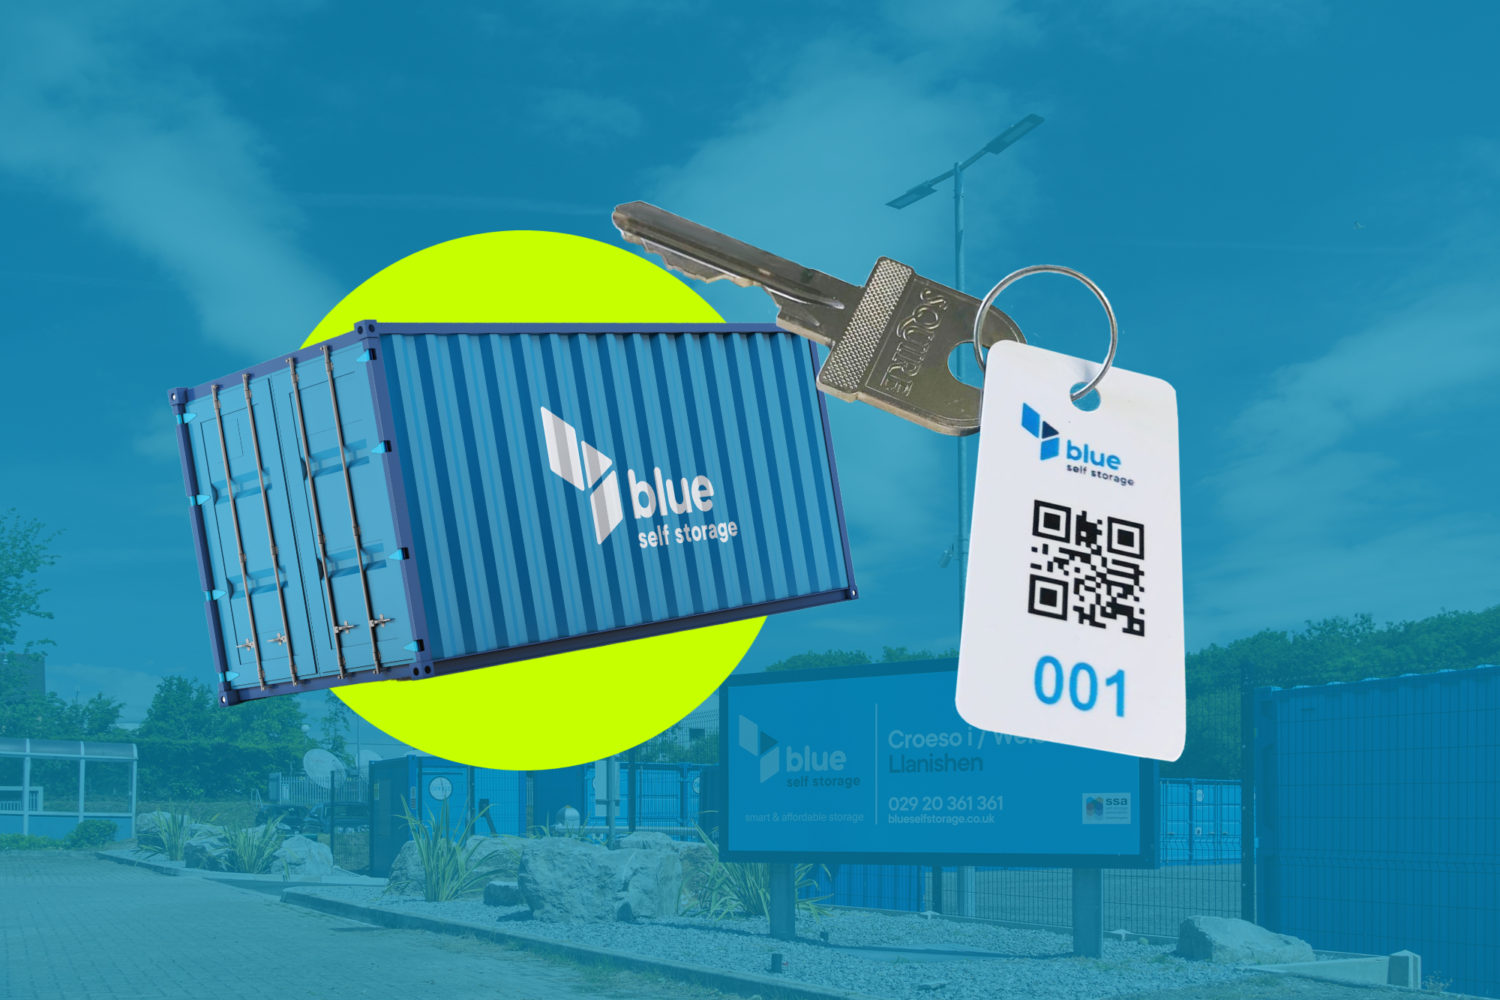 blue self storage QR automation booking system